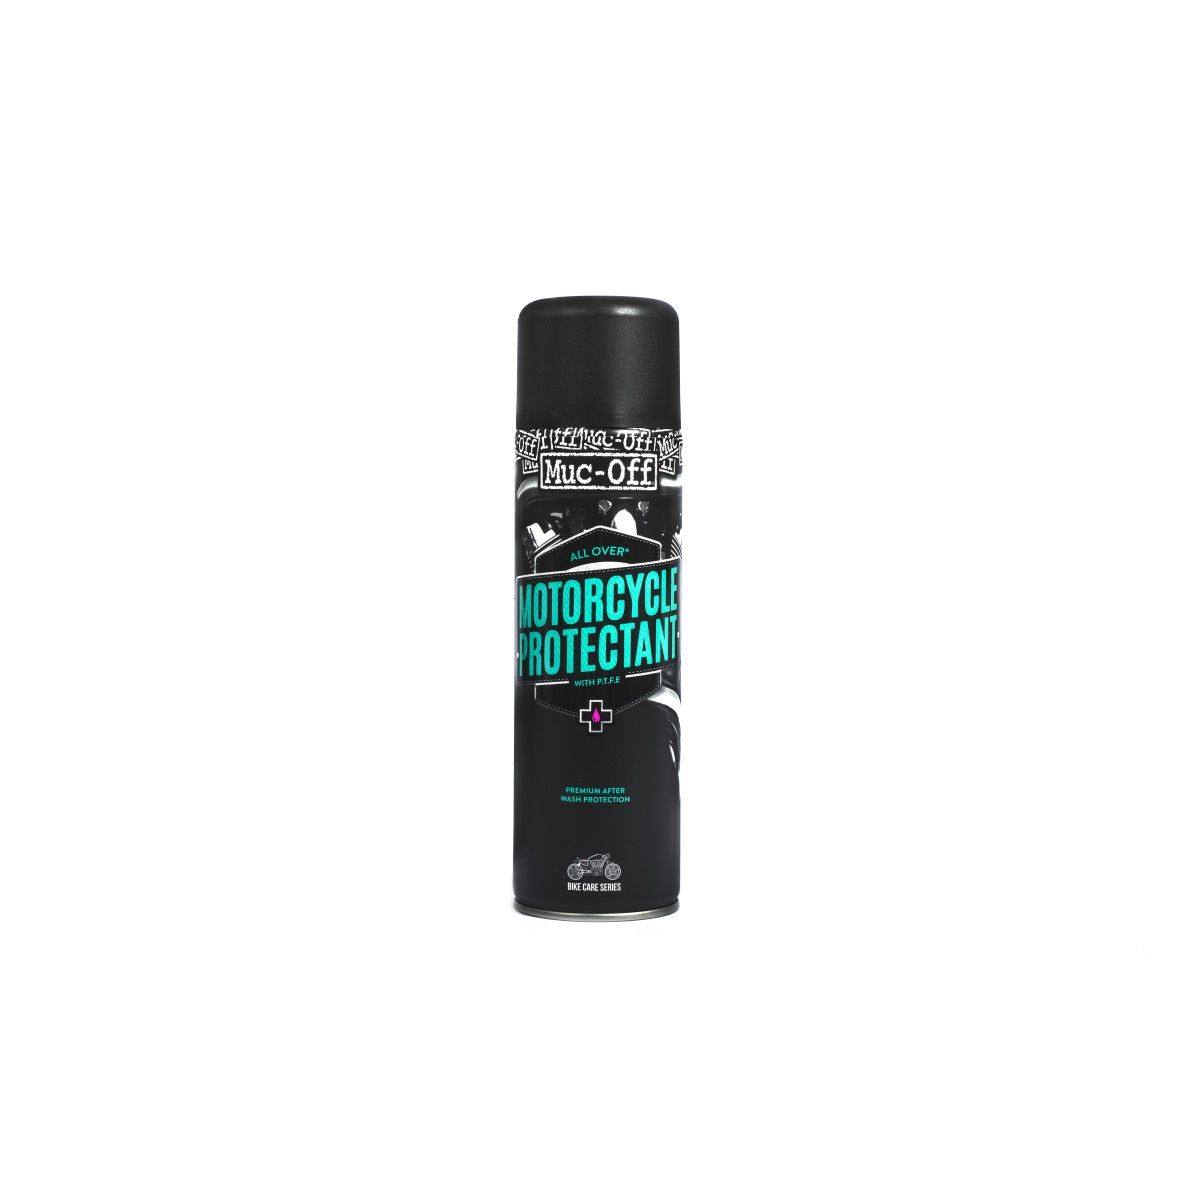 Muc-Off Motorcycle Protectant Siliconen Spray 500ml